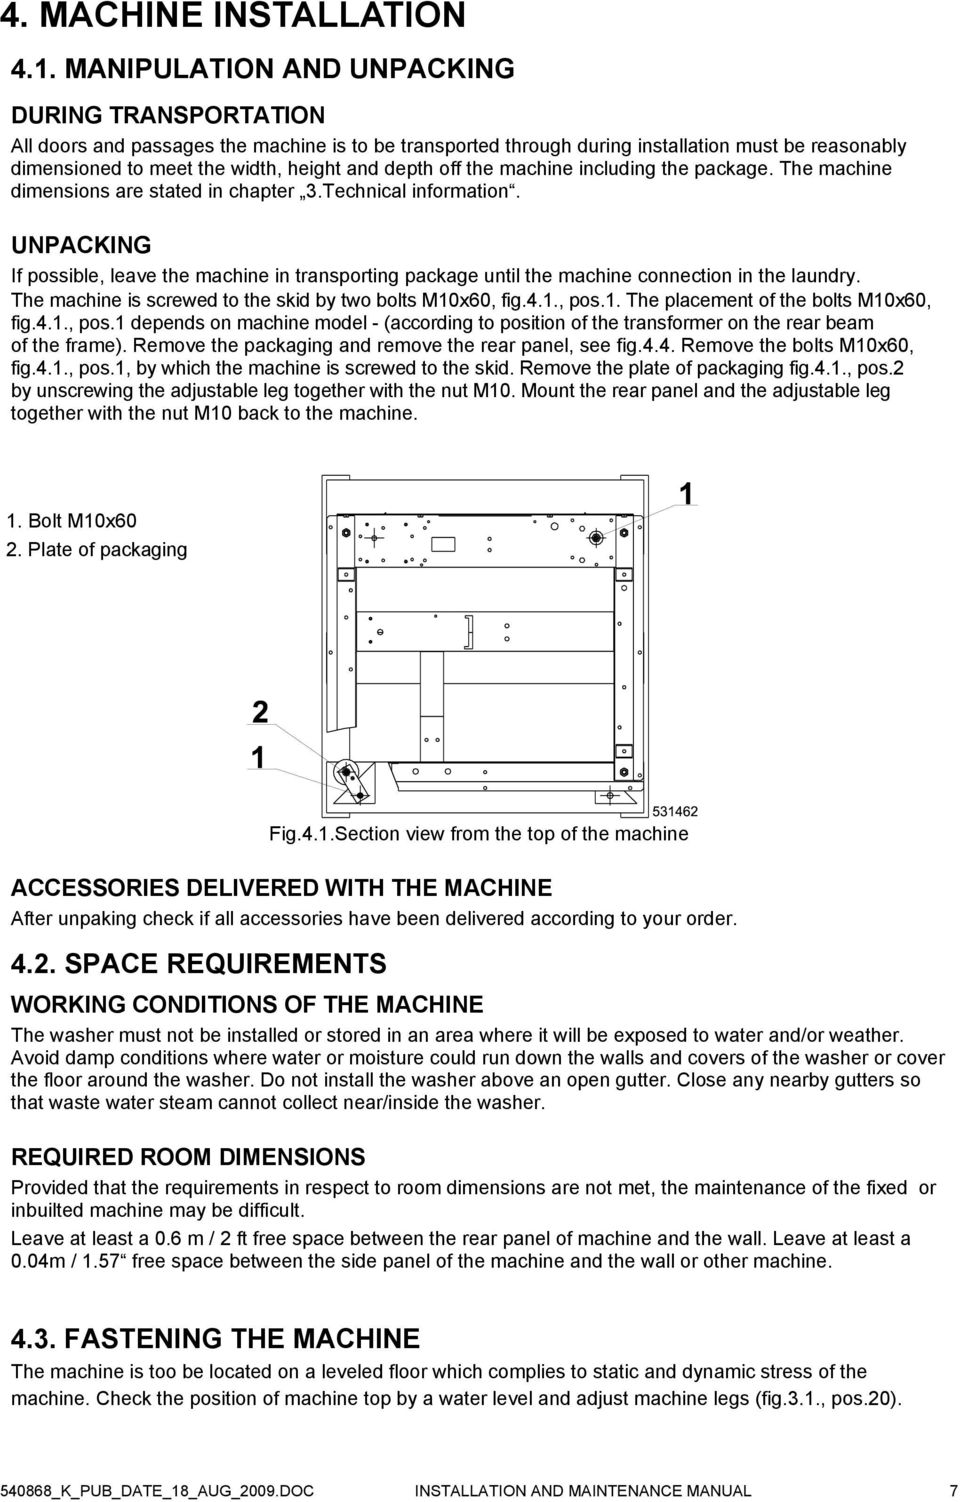 off the machine including the package. The machine dimensions are stated in chapter 3.Technical information.